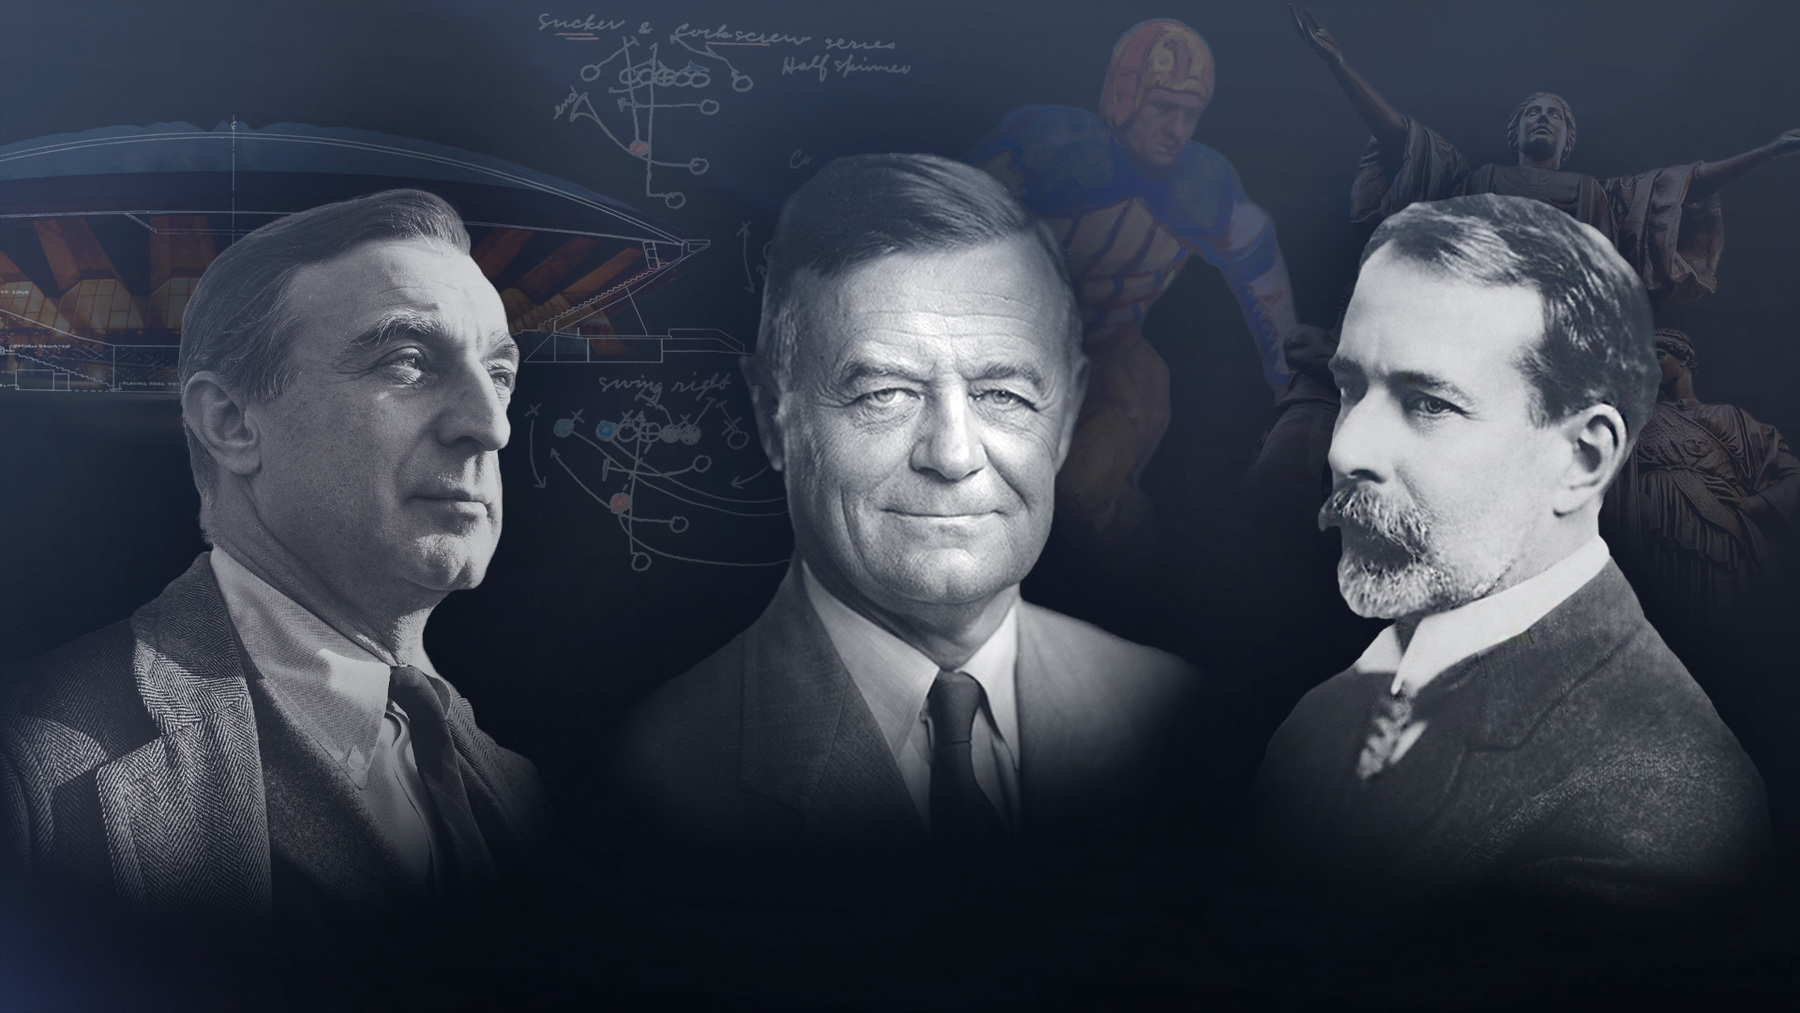 graphic image featuring portraits of architect Max Abramovitz, football coach Robert Zuppke, and sculptor Lorado Taft